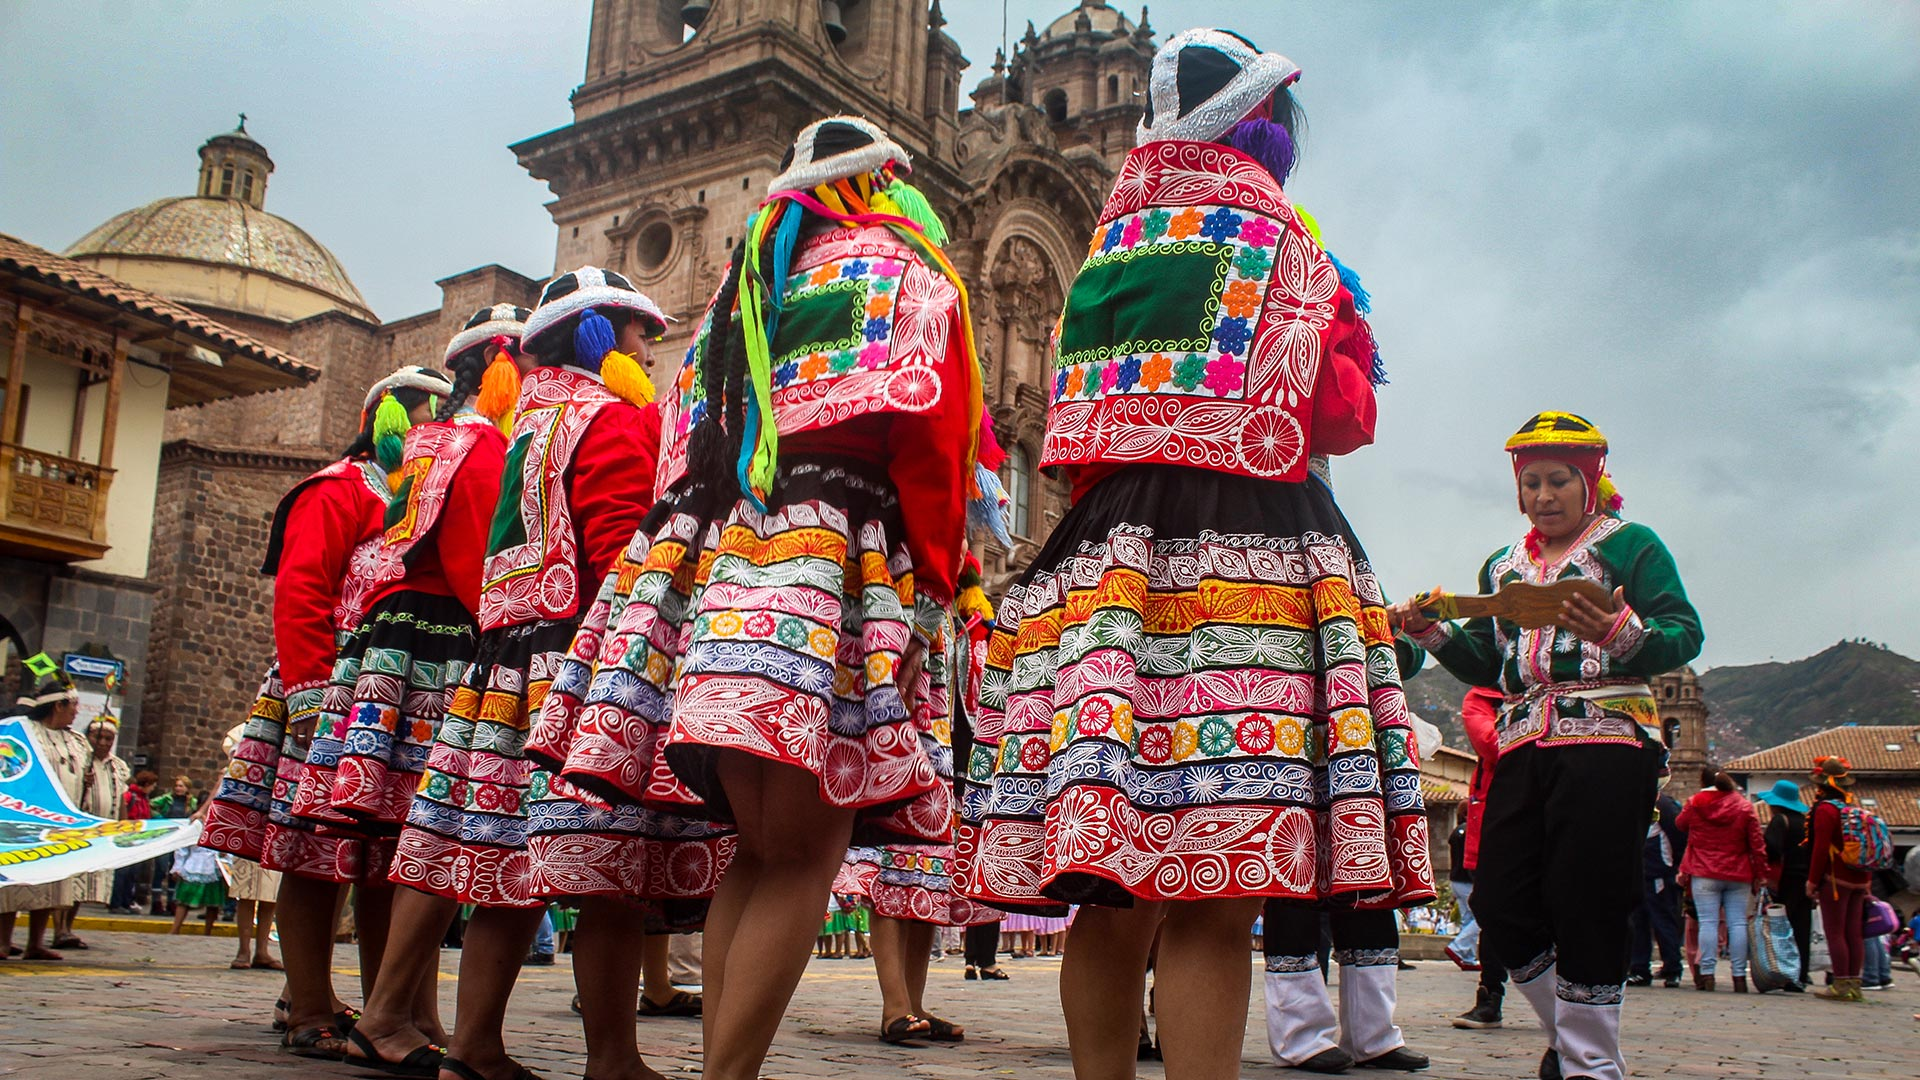 http://infromtheoutpost.com Traditional dress of the Andean people, in Cusco Peru